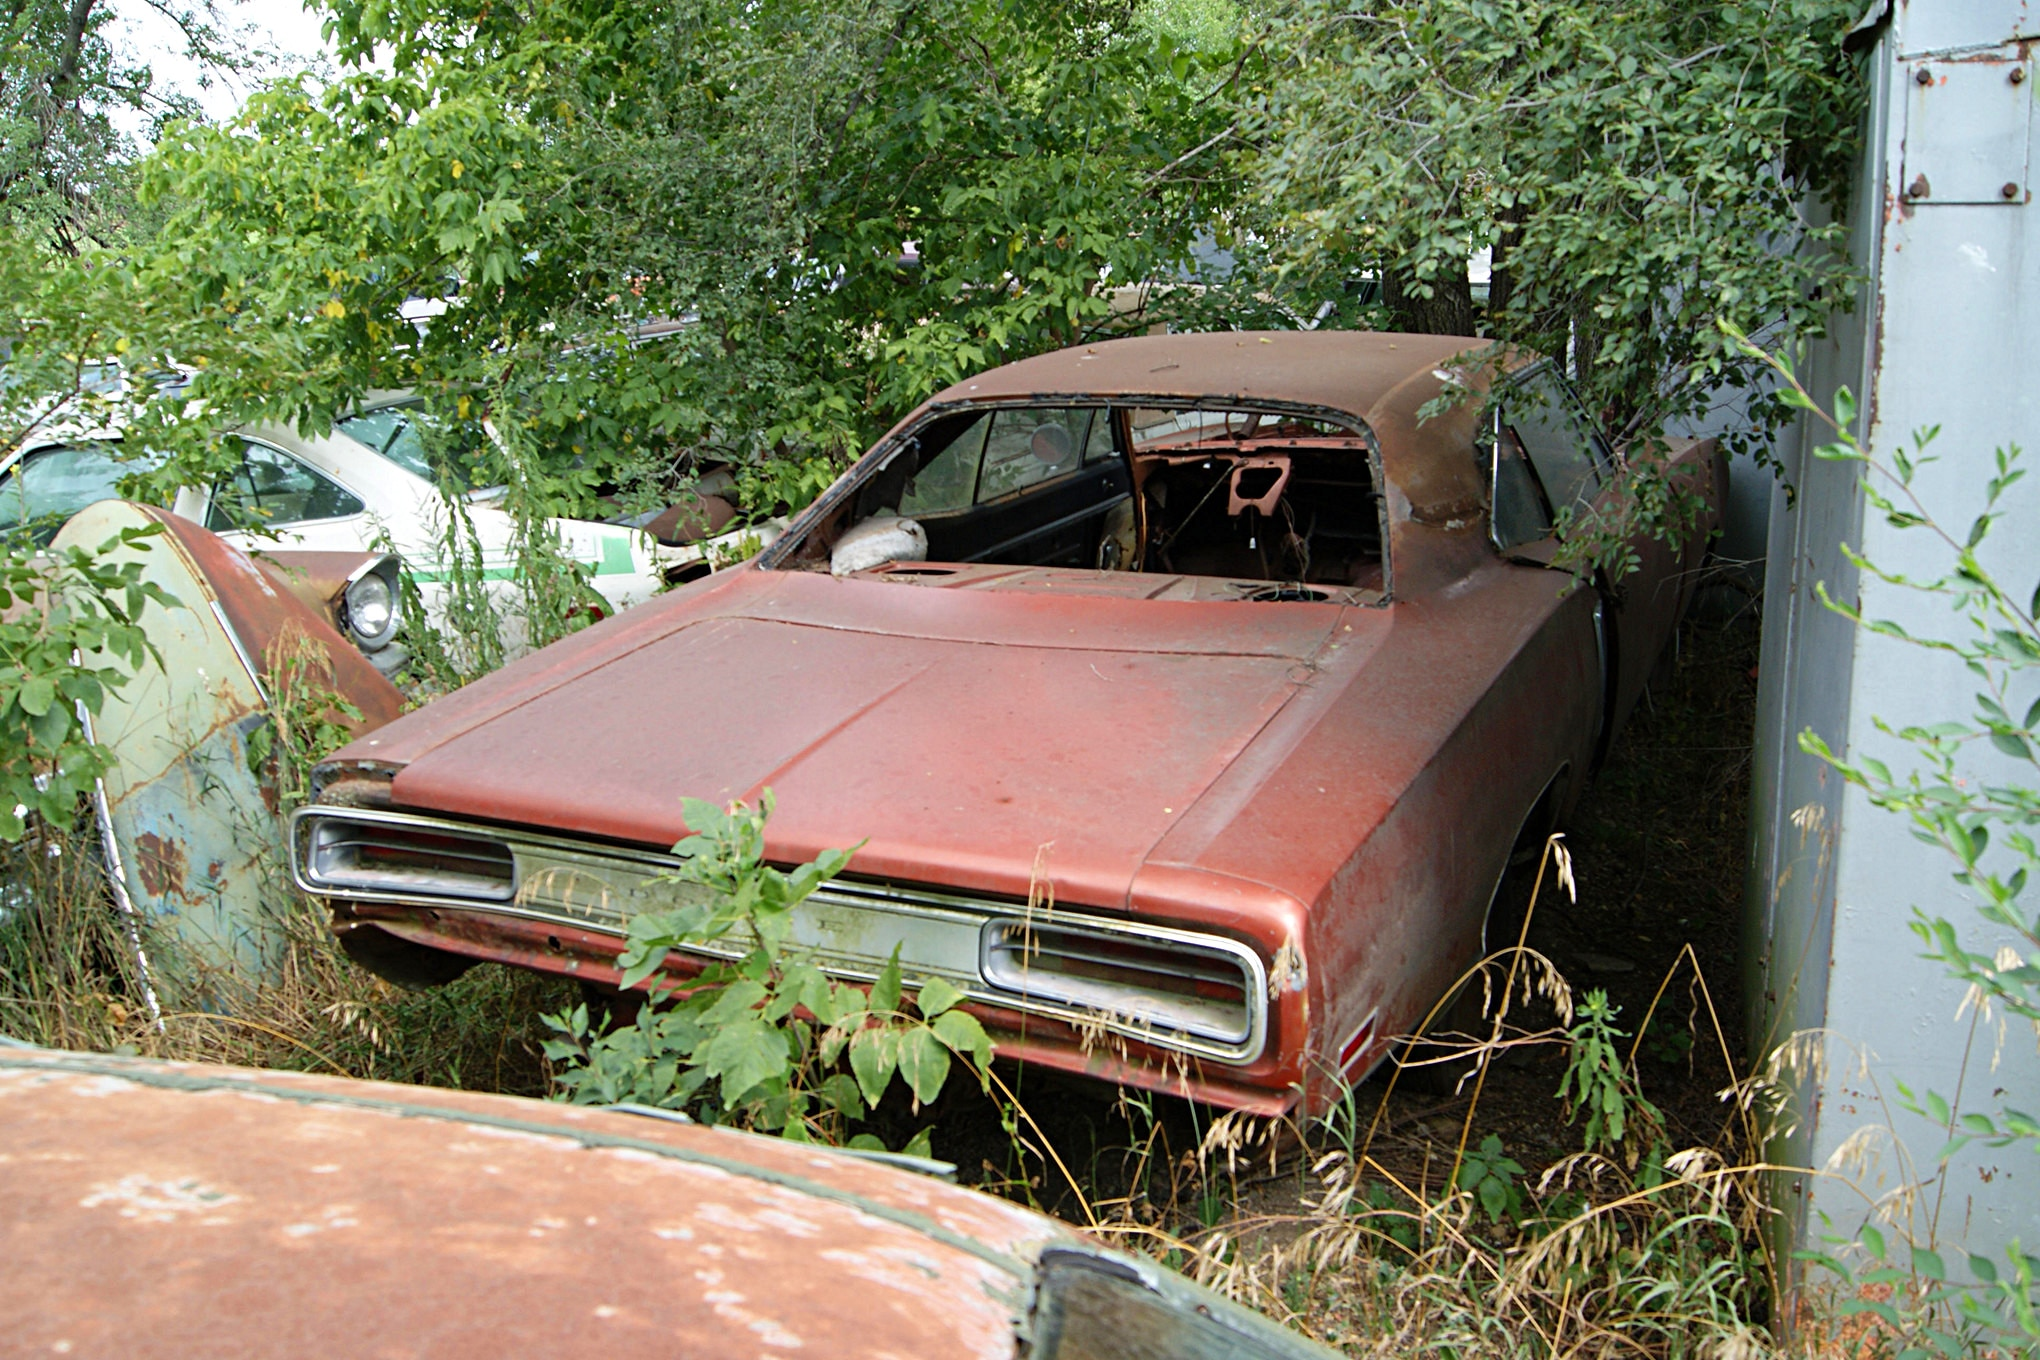 Barn Find Cars And...Train Stations?